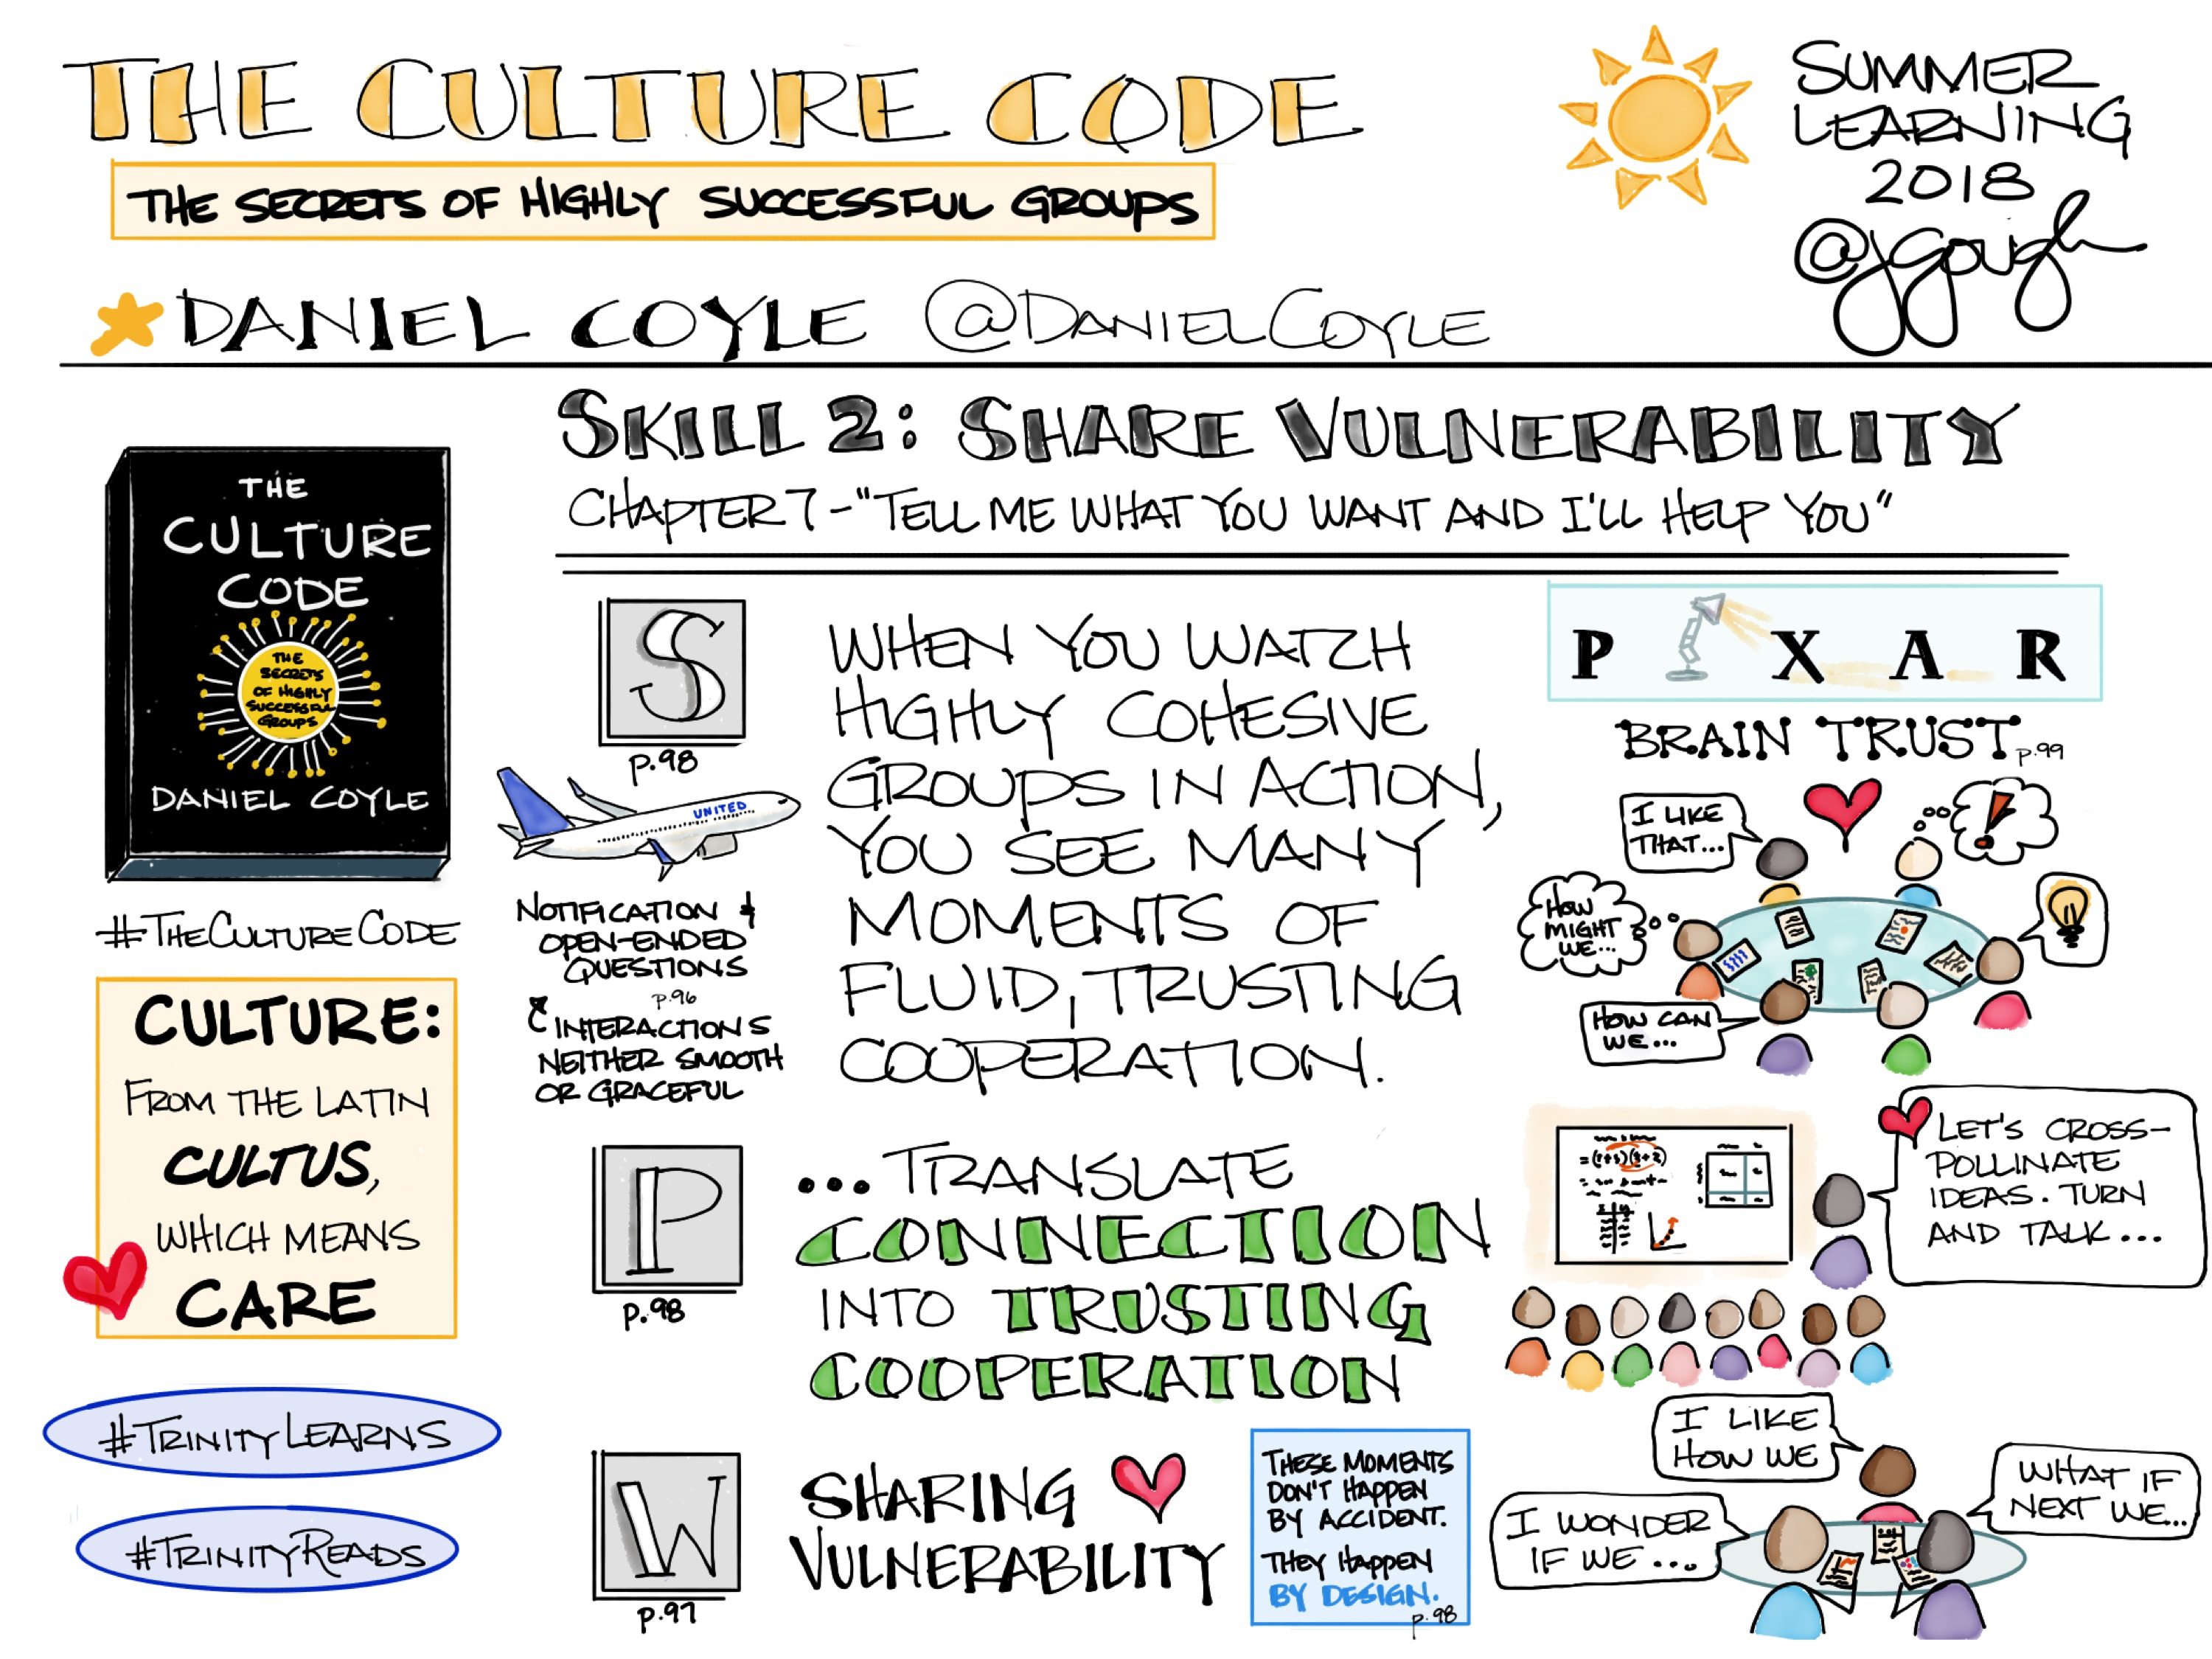 "#TheCultureCode by @DanielCoyle Skill 2 Share Vulnerability Chapter 7: ""Tell Me What You Want and I'll Help You""  #TrinityLearns translate connection into trusting cooperation #TrinityReads"